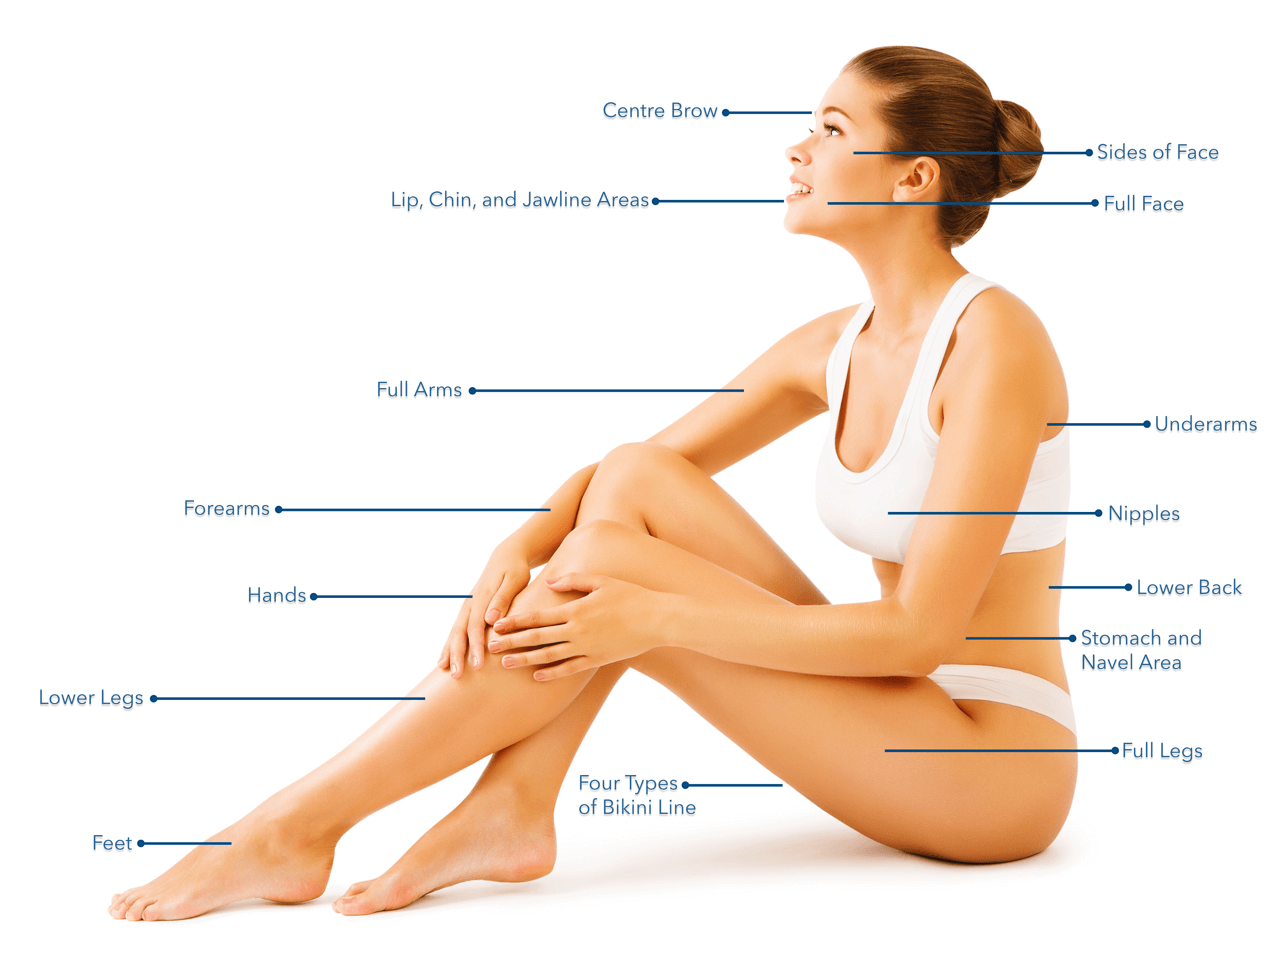 What areas can be treated with Laser hair removal?